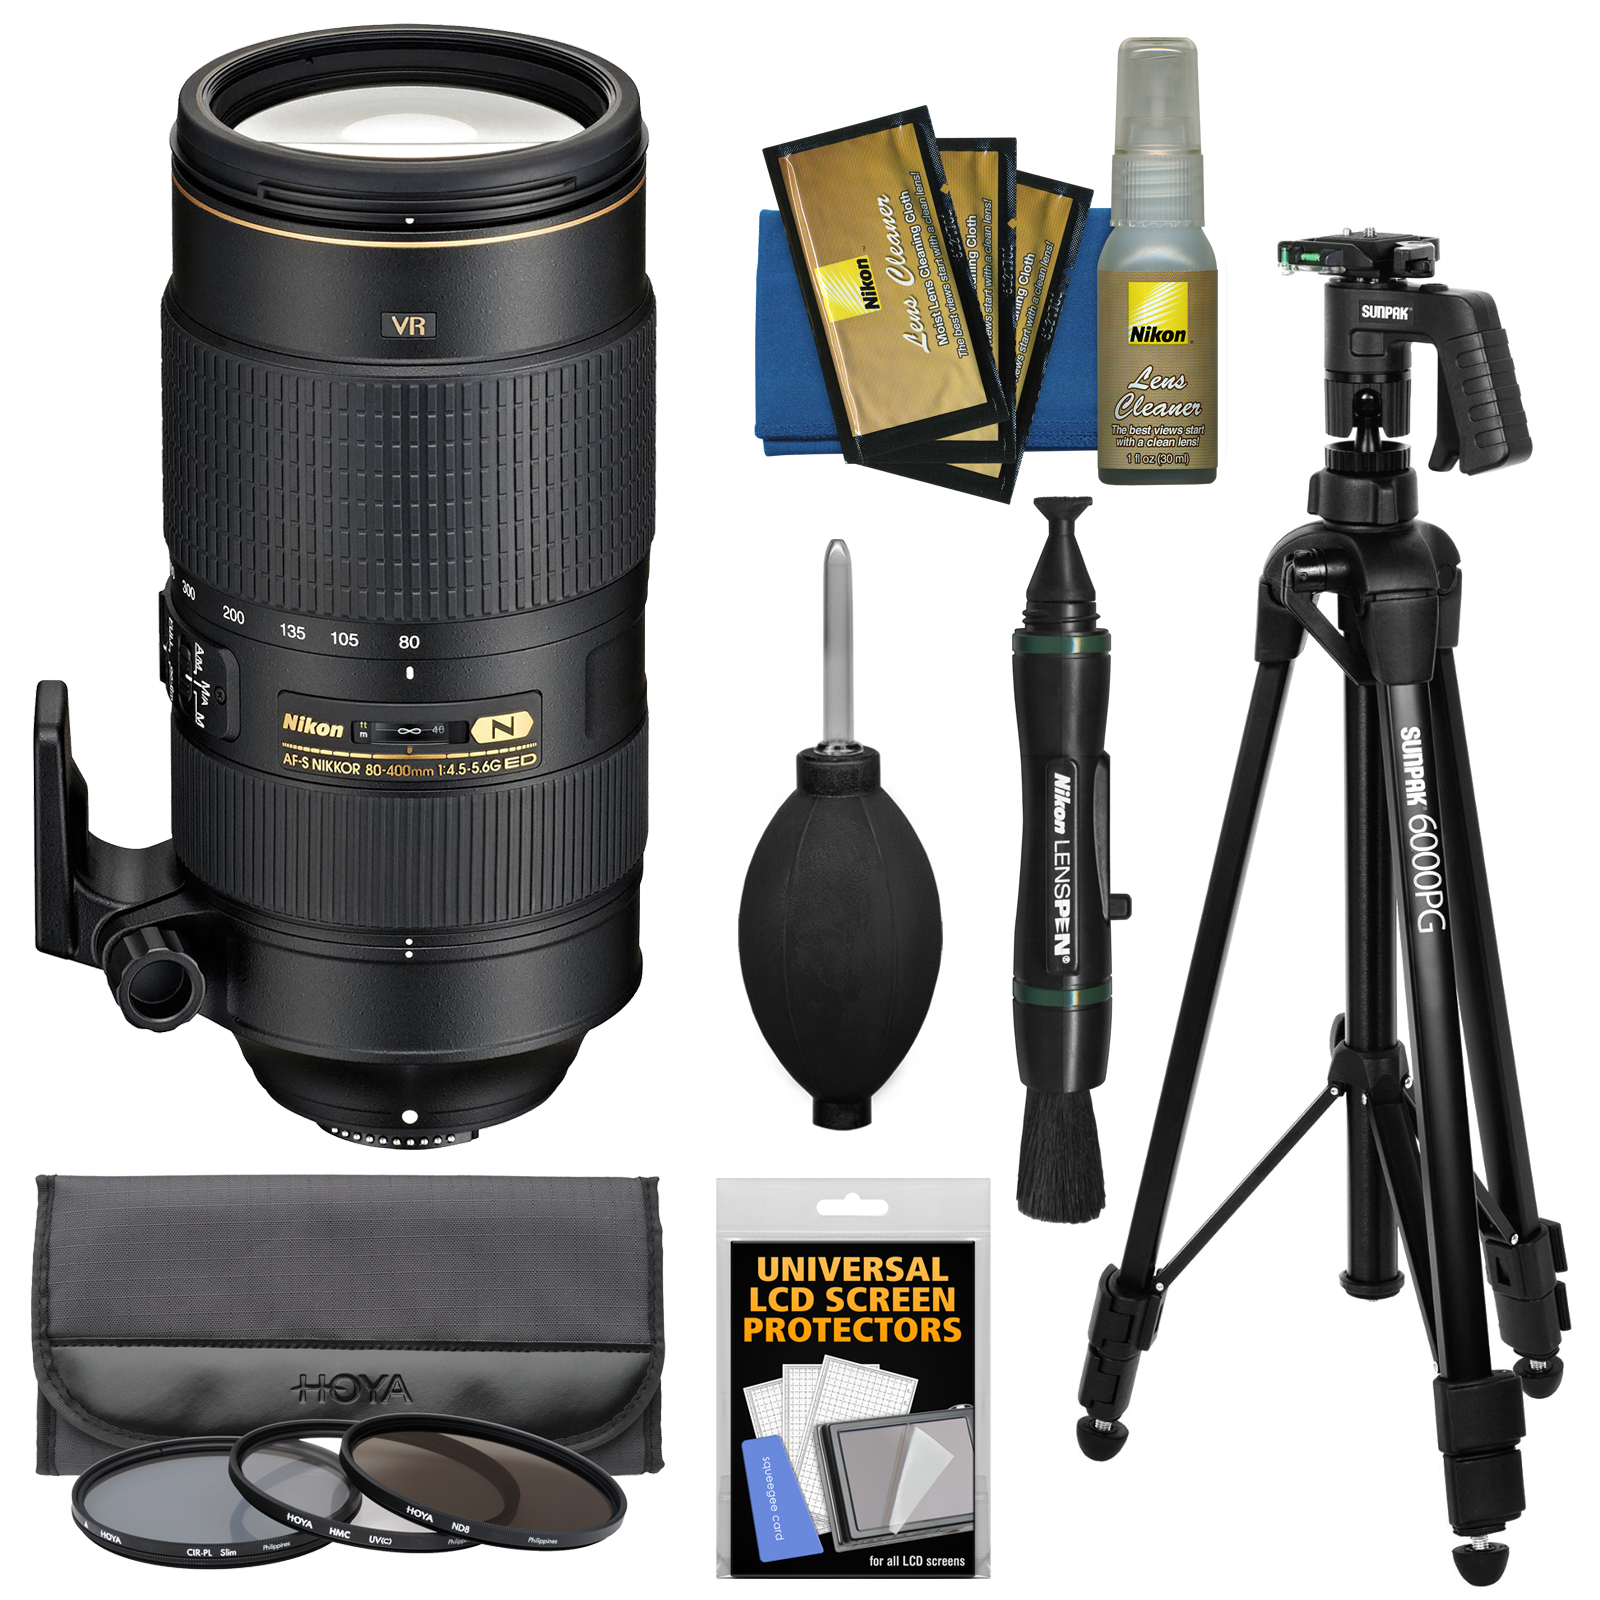 Nikon 80-400mm f/4.5-5.6G VR AF-S ED Nikkor-Zoom Lens with 3 Hoya UV/CPL/ND8 Filters + Pistol Grip Tripod + Kit for Digital SLR Cameras